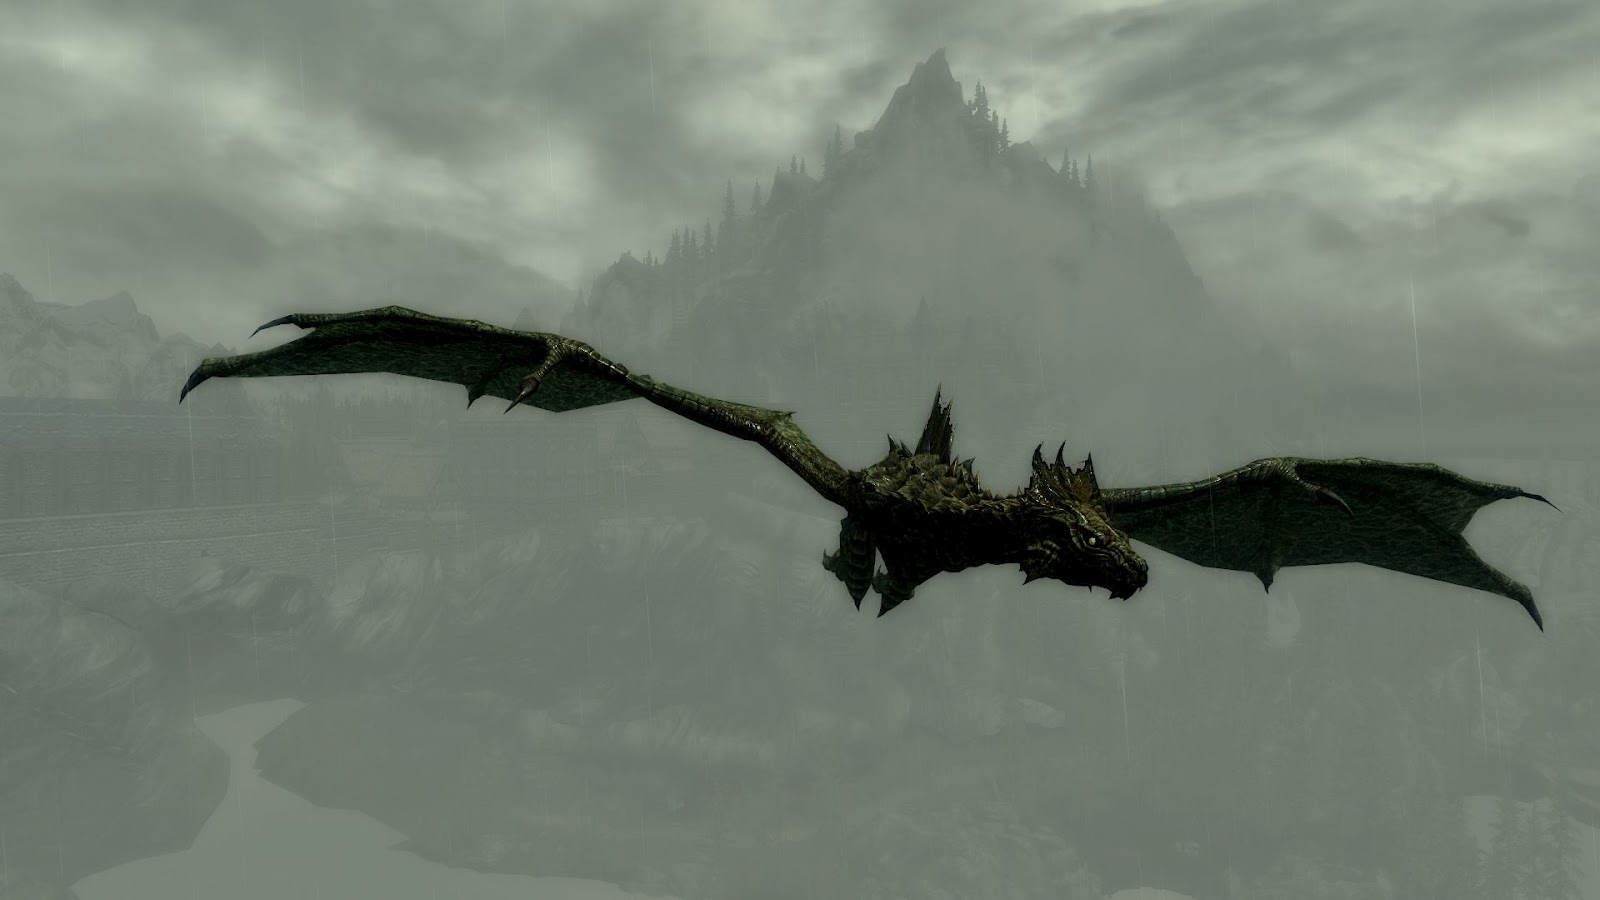 http://3.bp.blogspot.com/-u-W7BSeTOLw/T0k3q9MmXZI/AAAAAAAAAtM/AxqXHbuQBQU/s1600/The_Elder_Scrolls_V_Skyrim_Flying_Dragon_HD_Wallpaper-gWb.jpg